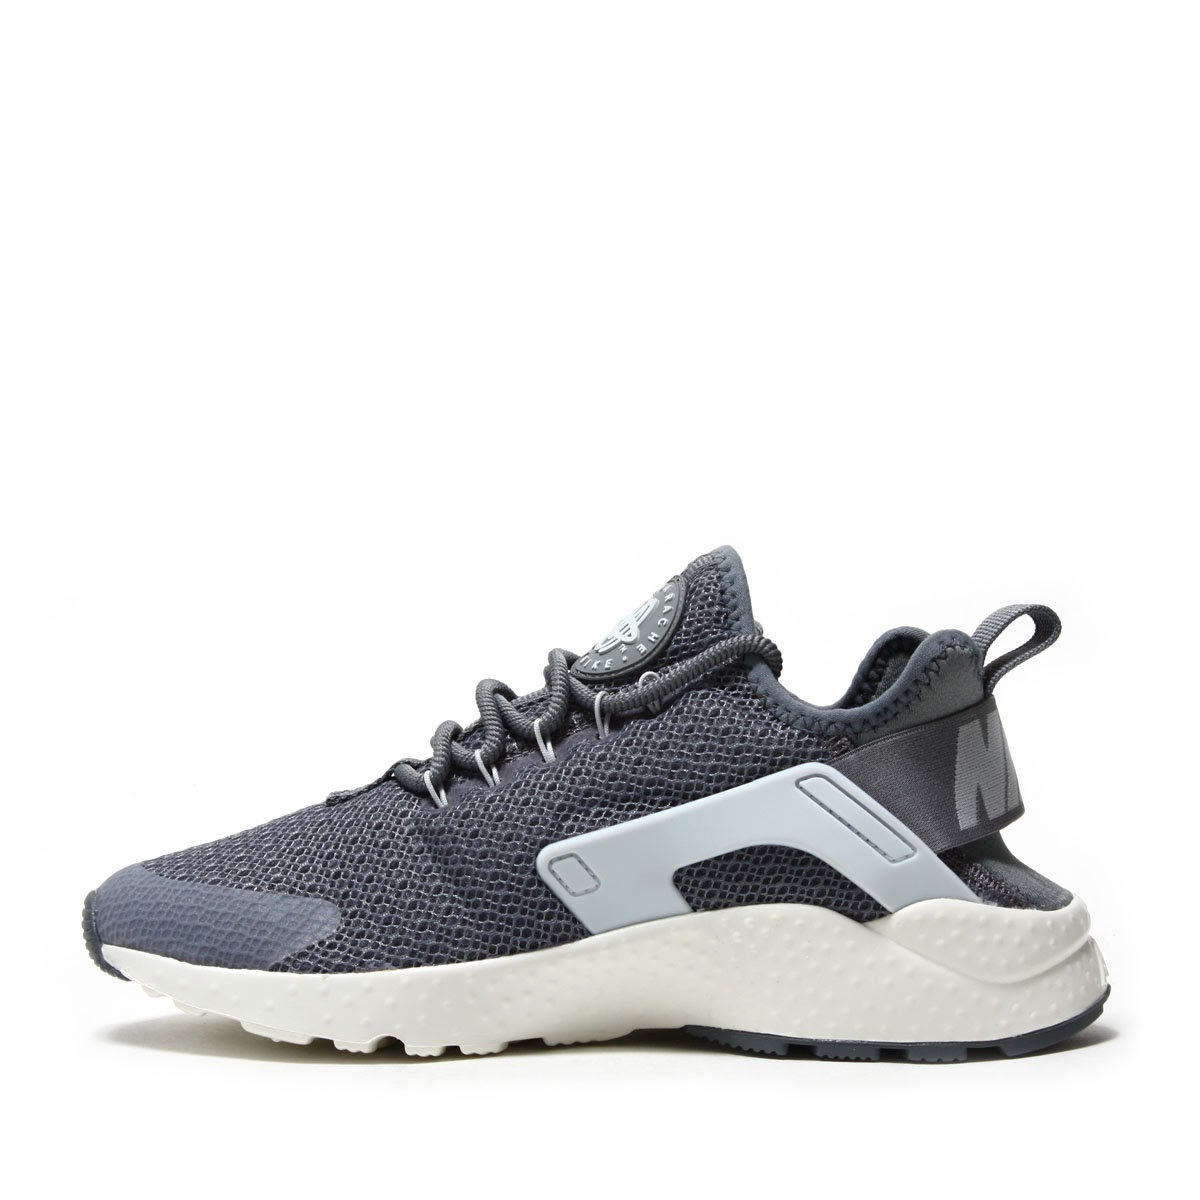 online retailer 425b1 cc296 NIKE W AIR HUARACHE RUN ULTRA(naikiuimenzueaharachiranurutora)COOL GREY PURE  PLATINUM-SUMMIT WHITE 18SP-I